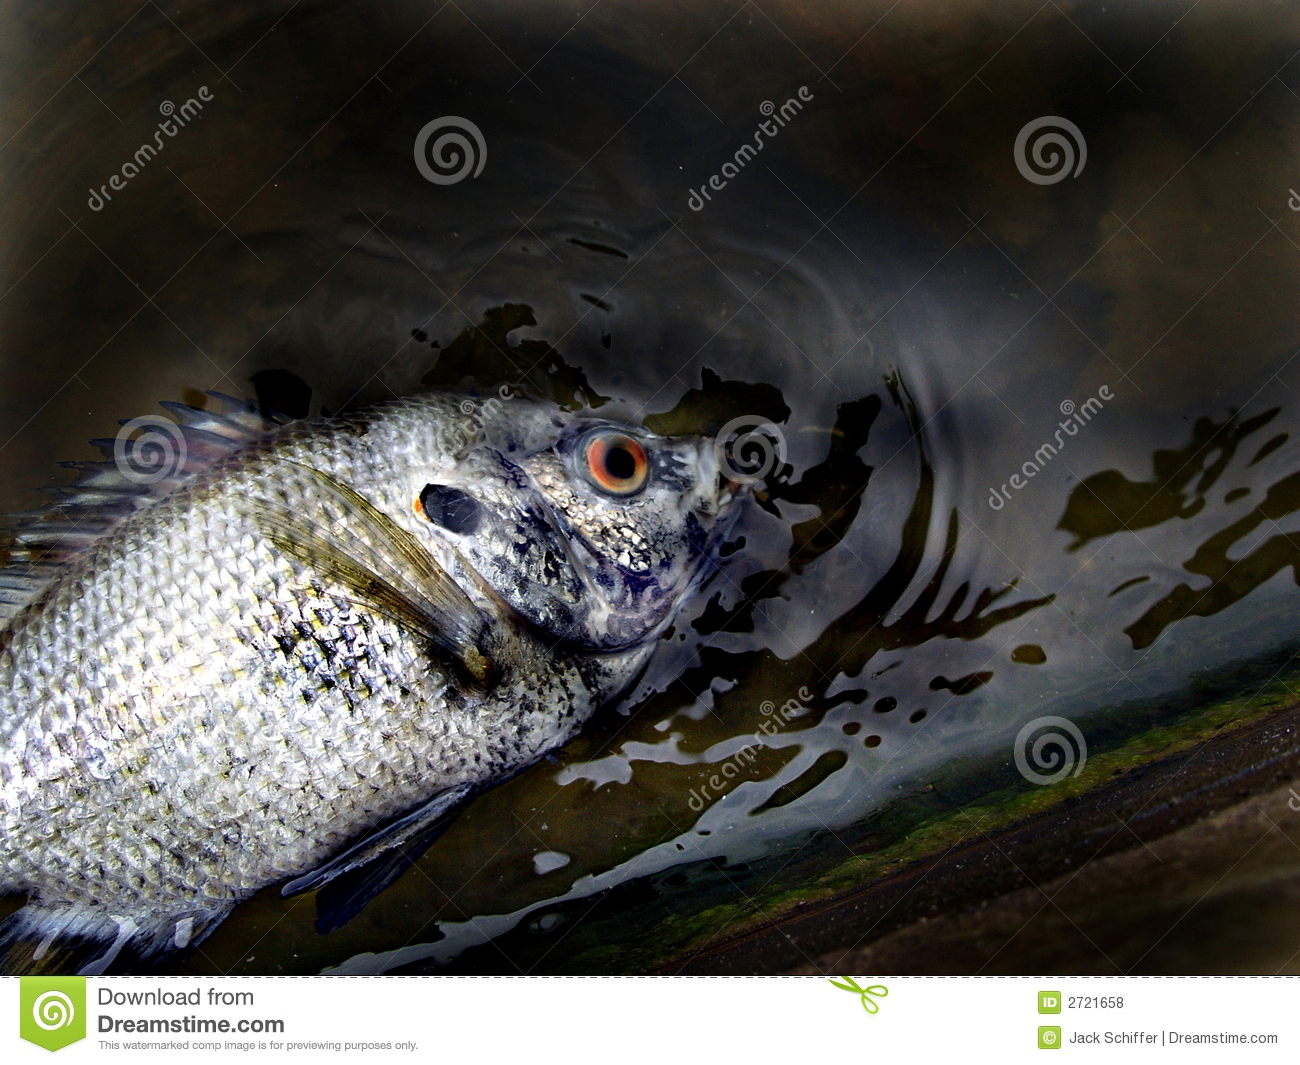 What dreams of a dead fish 100